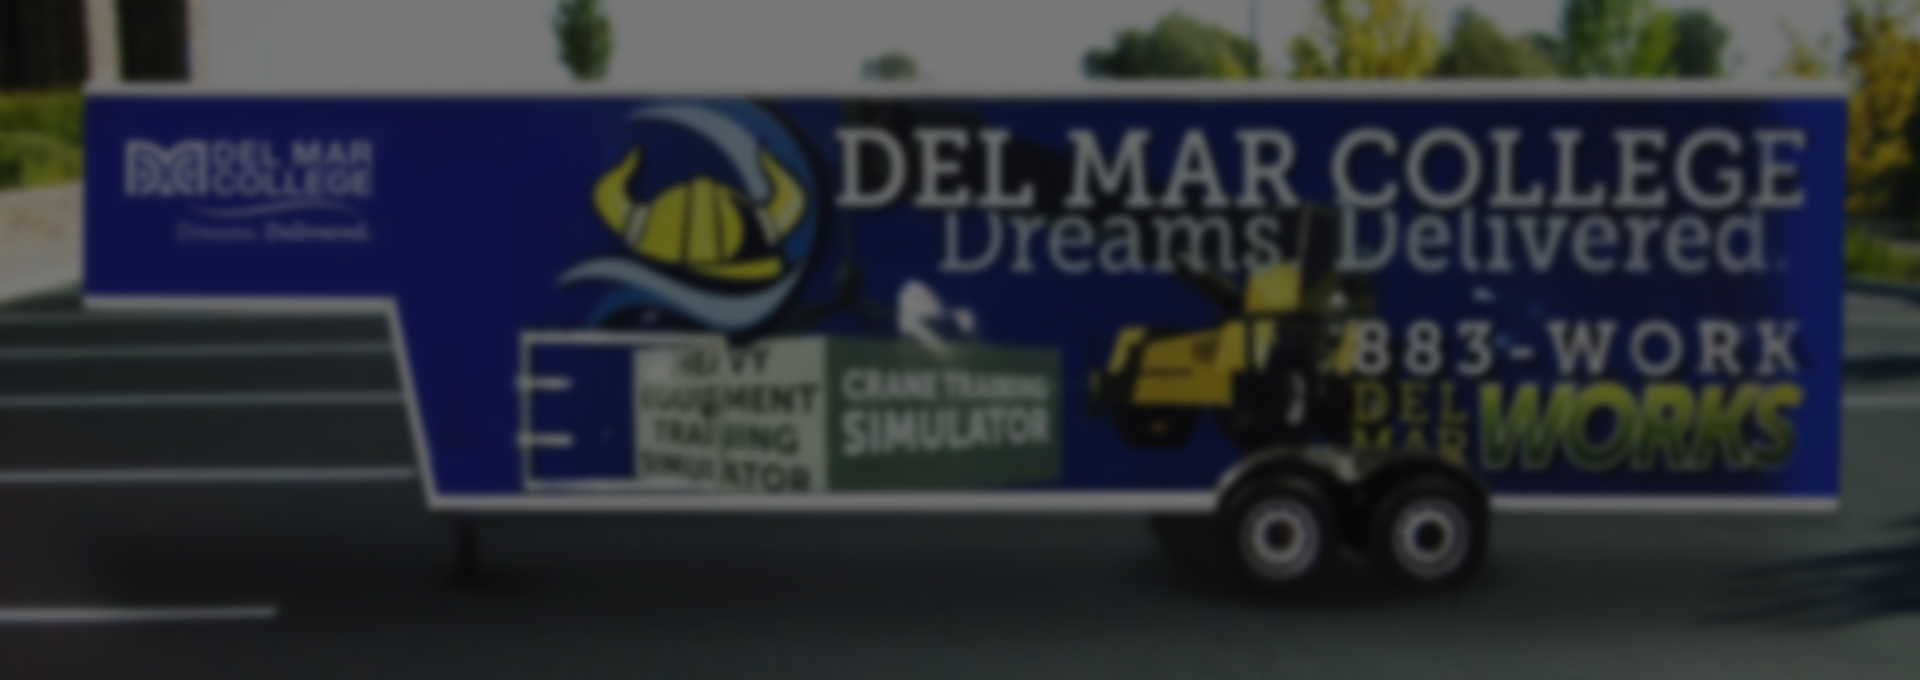 Del Mar College Boosts Skilled Workforce with CM Labs Vortex Simulator